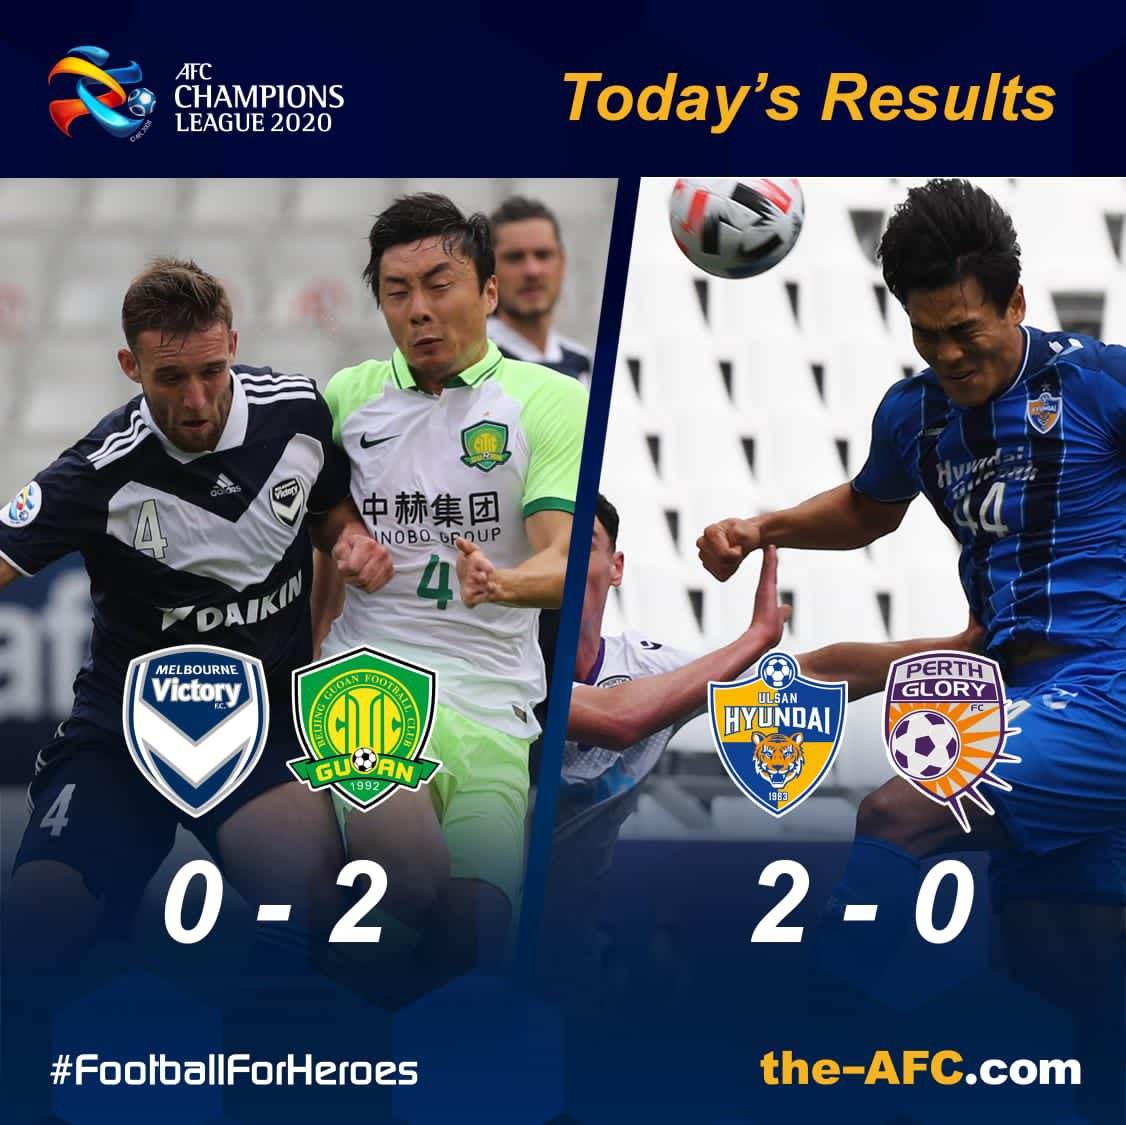 ⚽️ #ACL2020 East | Today's Results  🇦🇺 Melbourne Victory 0-2 Beijing FC 🇨🇳   🇰🇷 Ulsan Hyundai 2-0 Perth Glory 🇦🇺   #FootballForHeroes